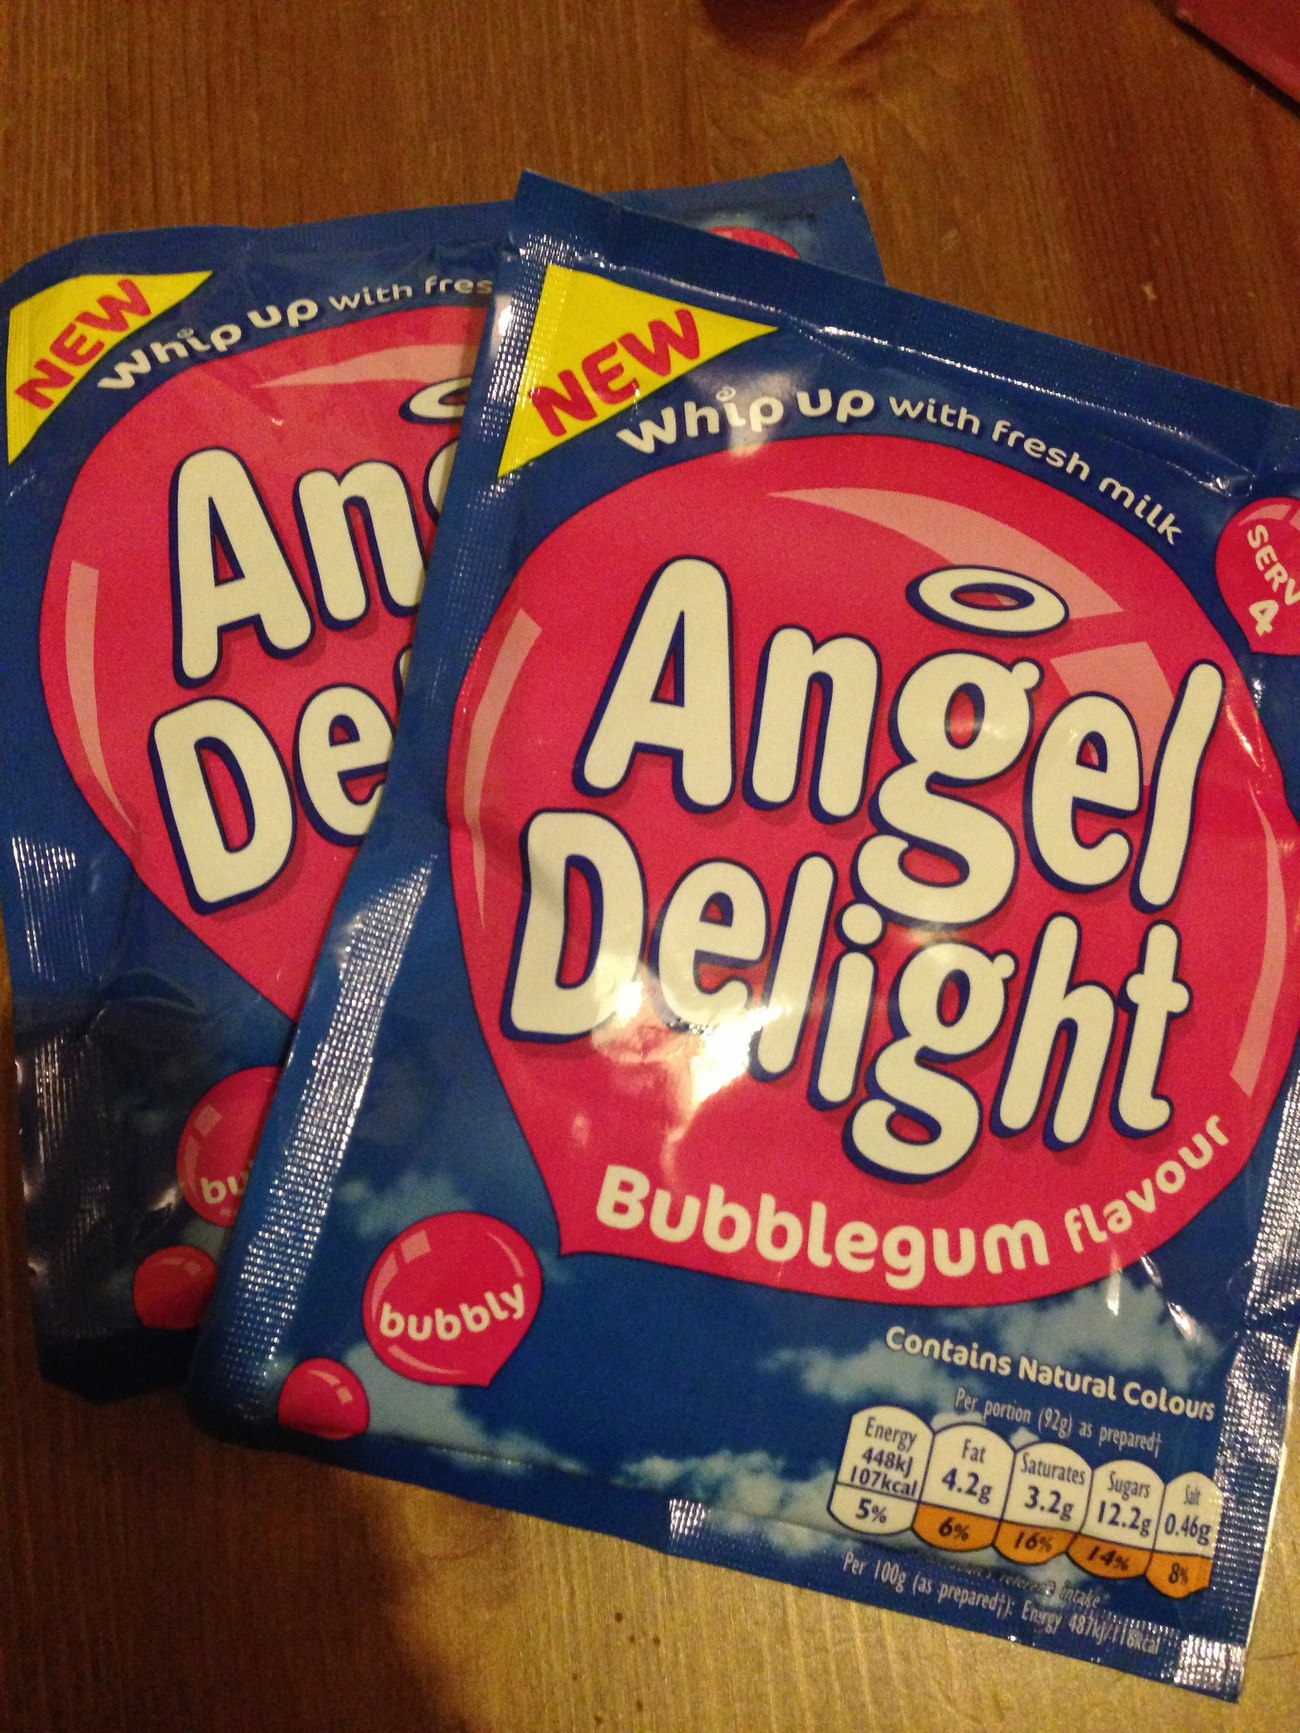 bubblegum angel delight